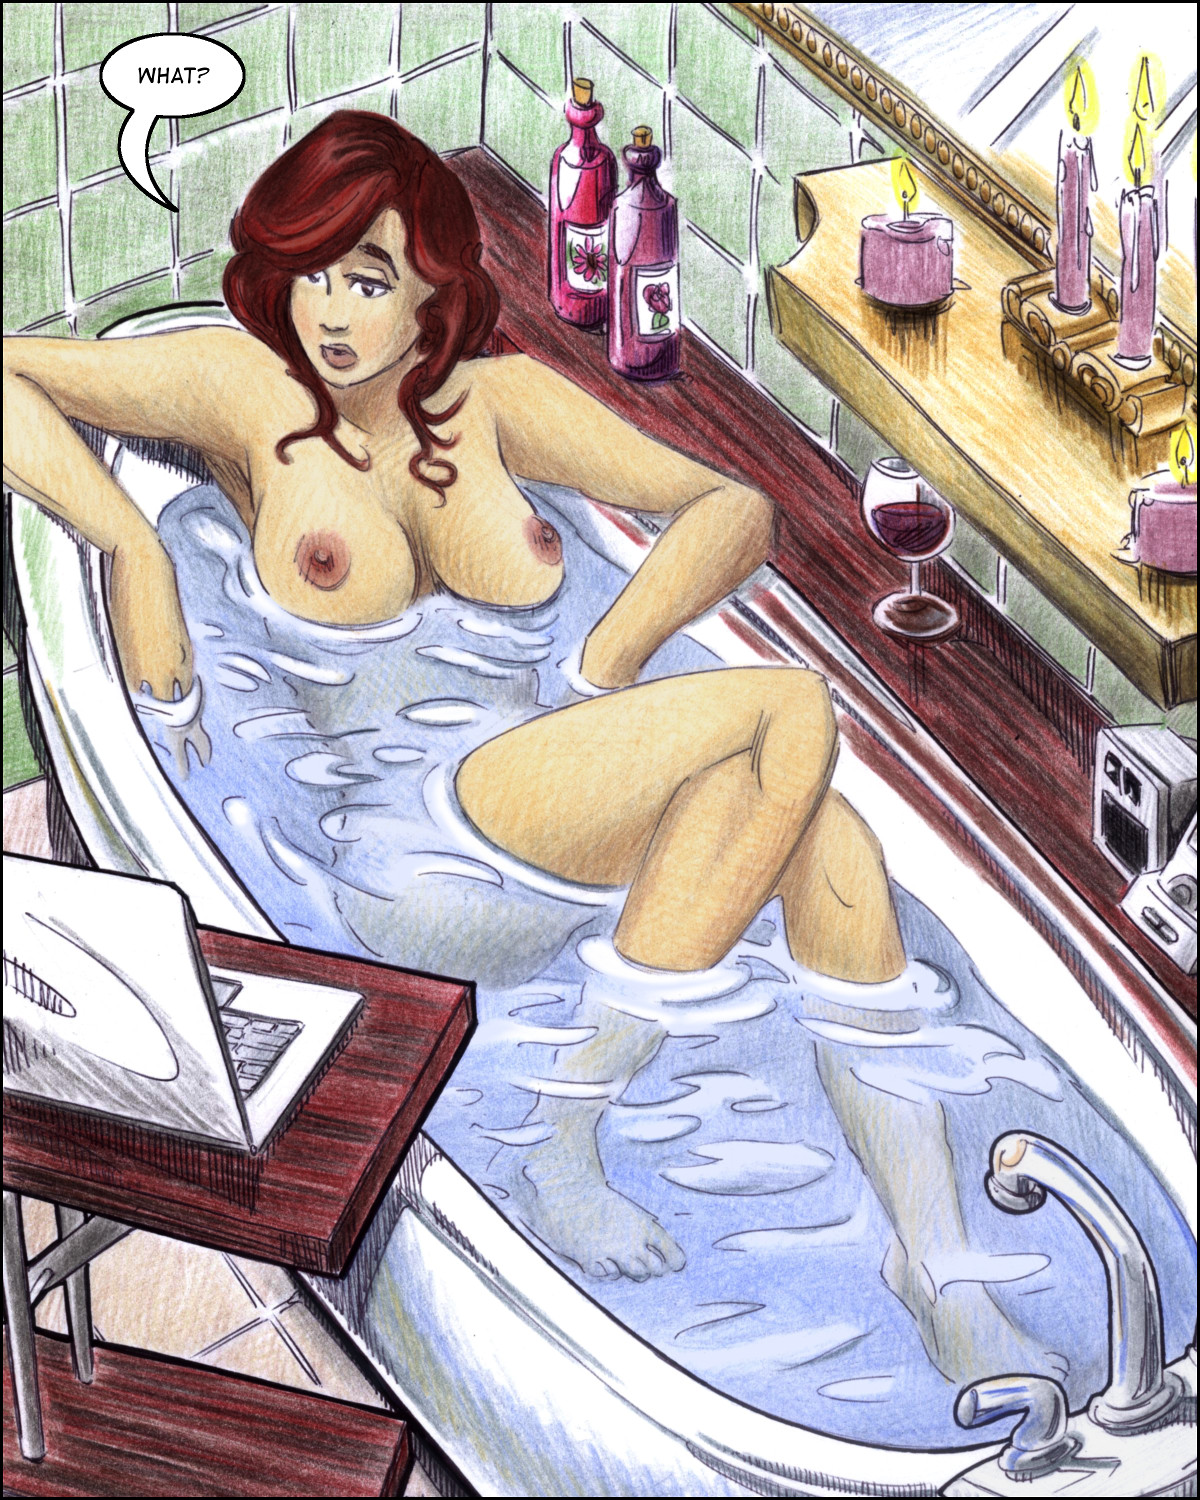 Professor Aphrodite Mora interrupted in her bath.